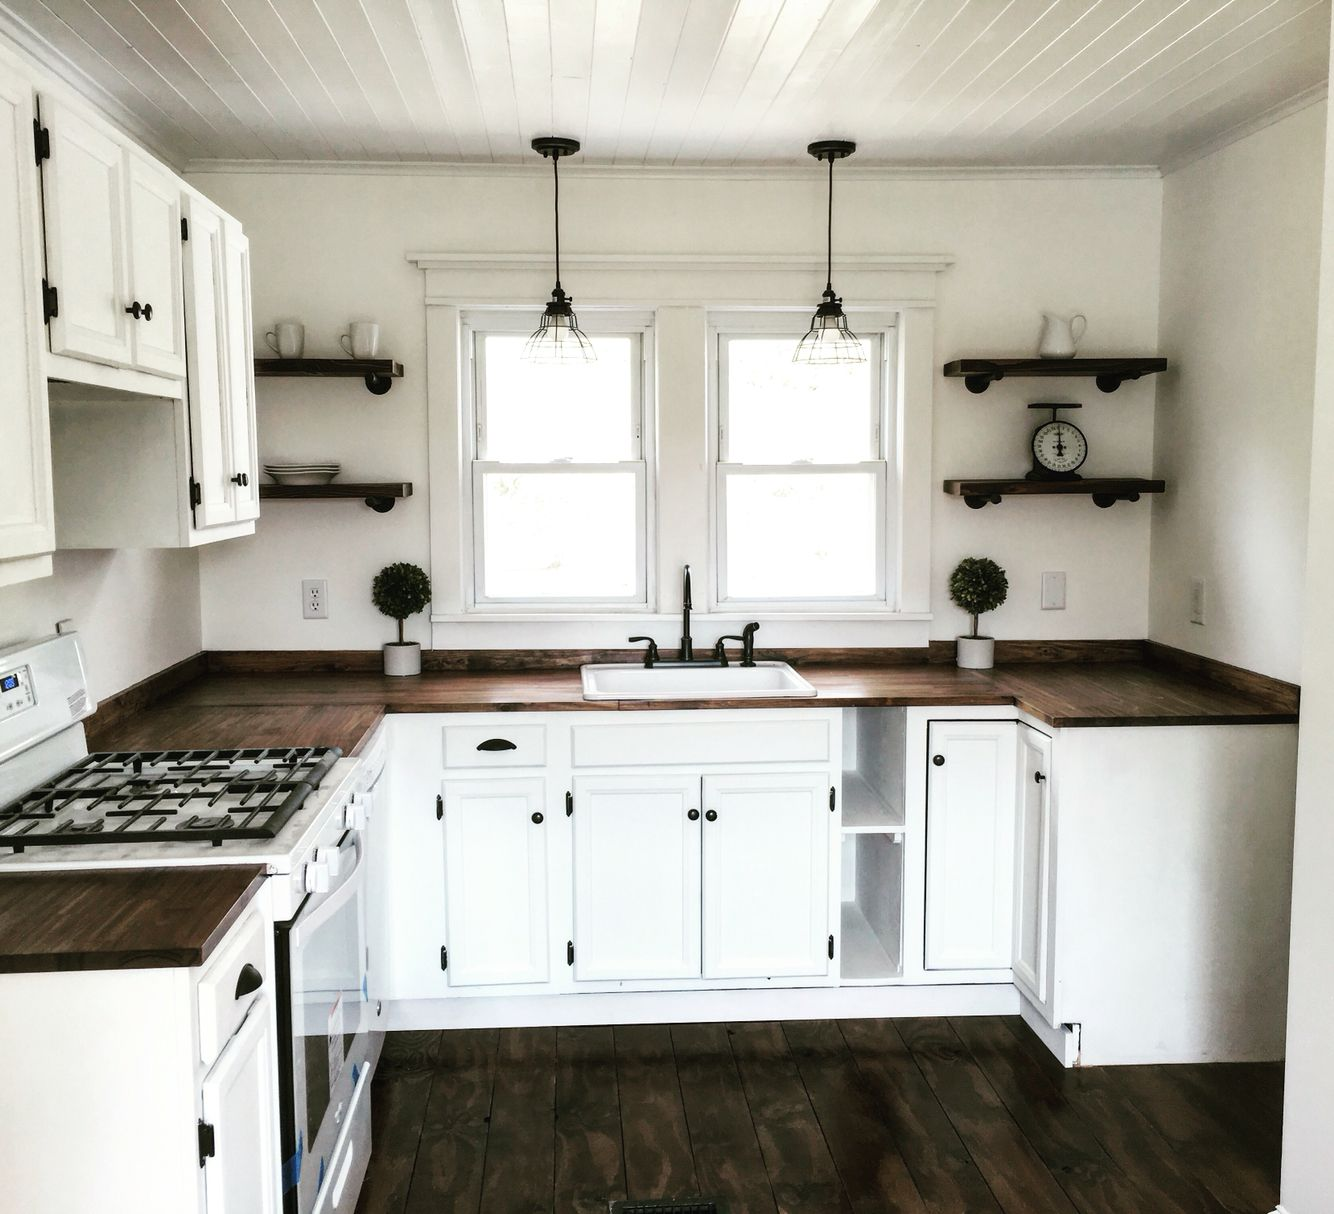 Farmhouse Kitchen On The Cheap Cabinets From Craigslist Painted With Homemade Chalk Paint